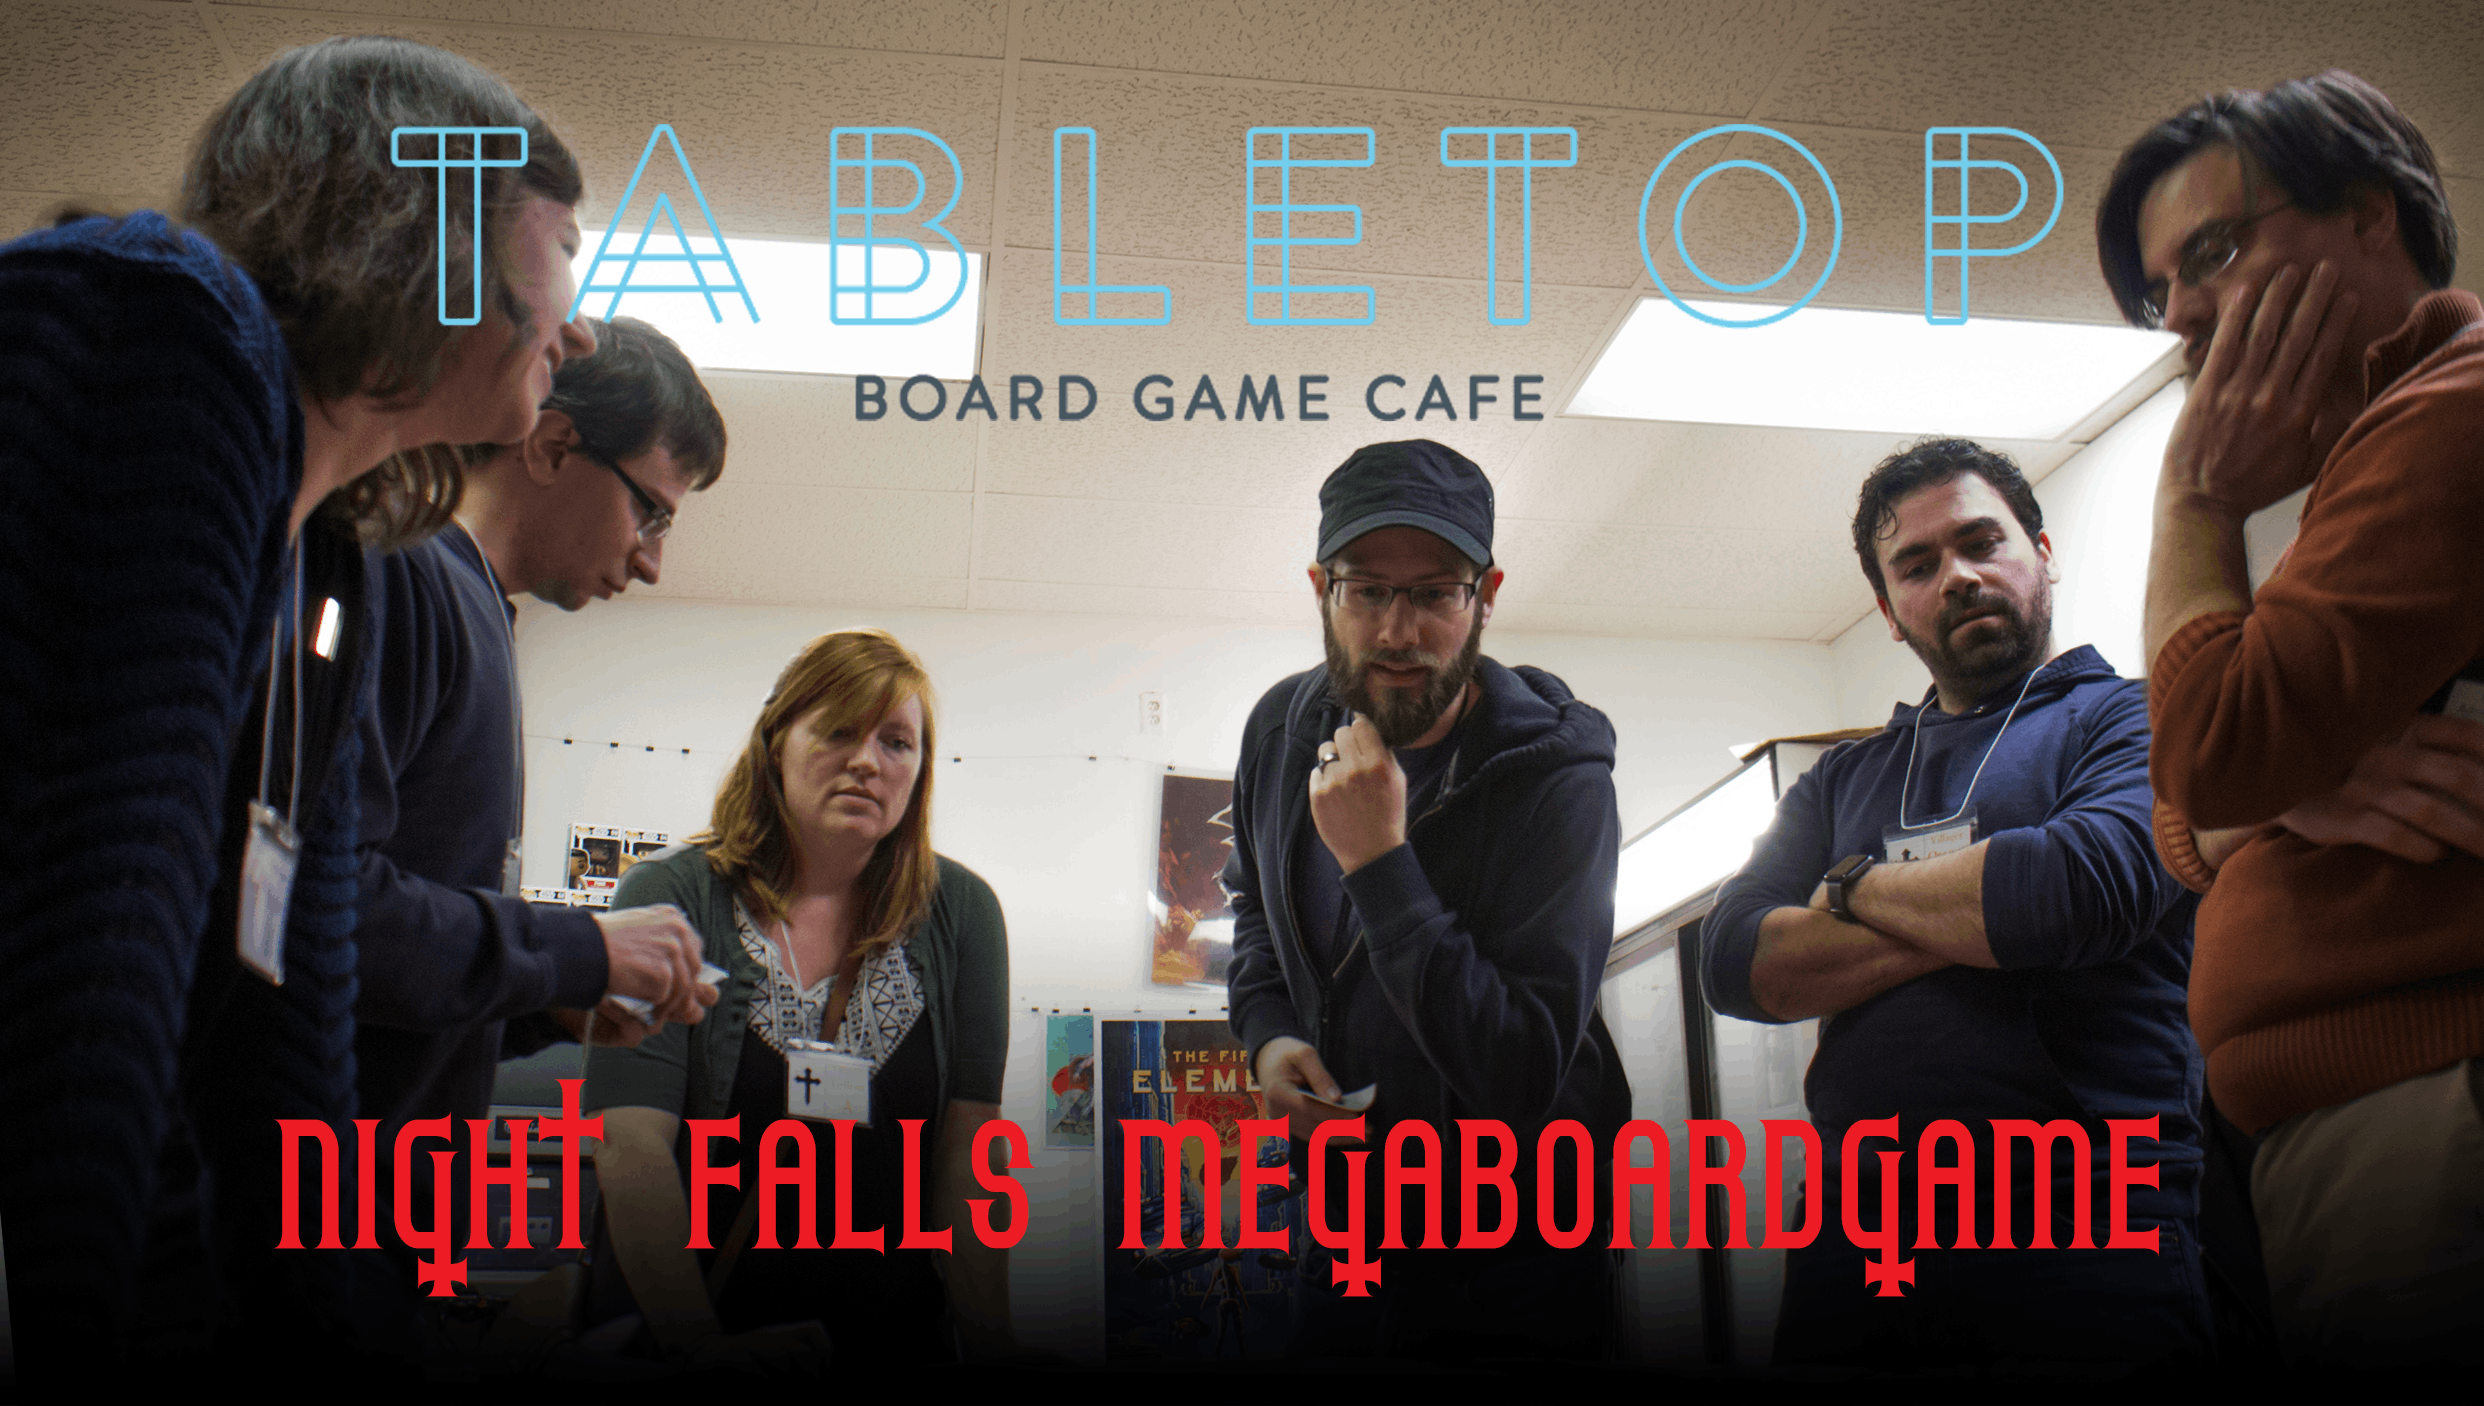 Night Falls Megaboardgame Tabletop Cleveland At Tabletop Board